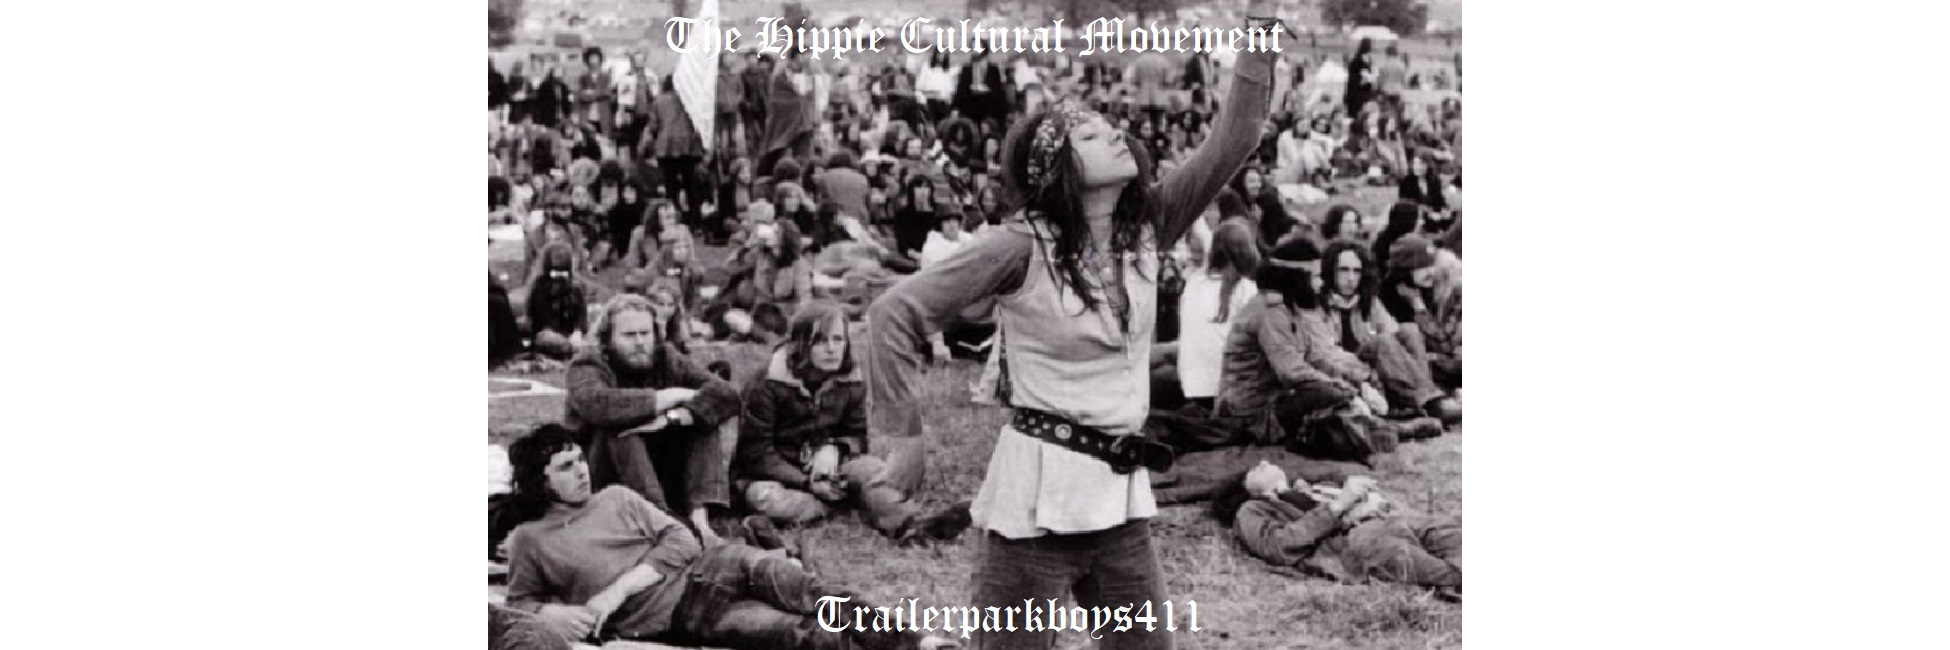 The Hippie Cultural Movement